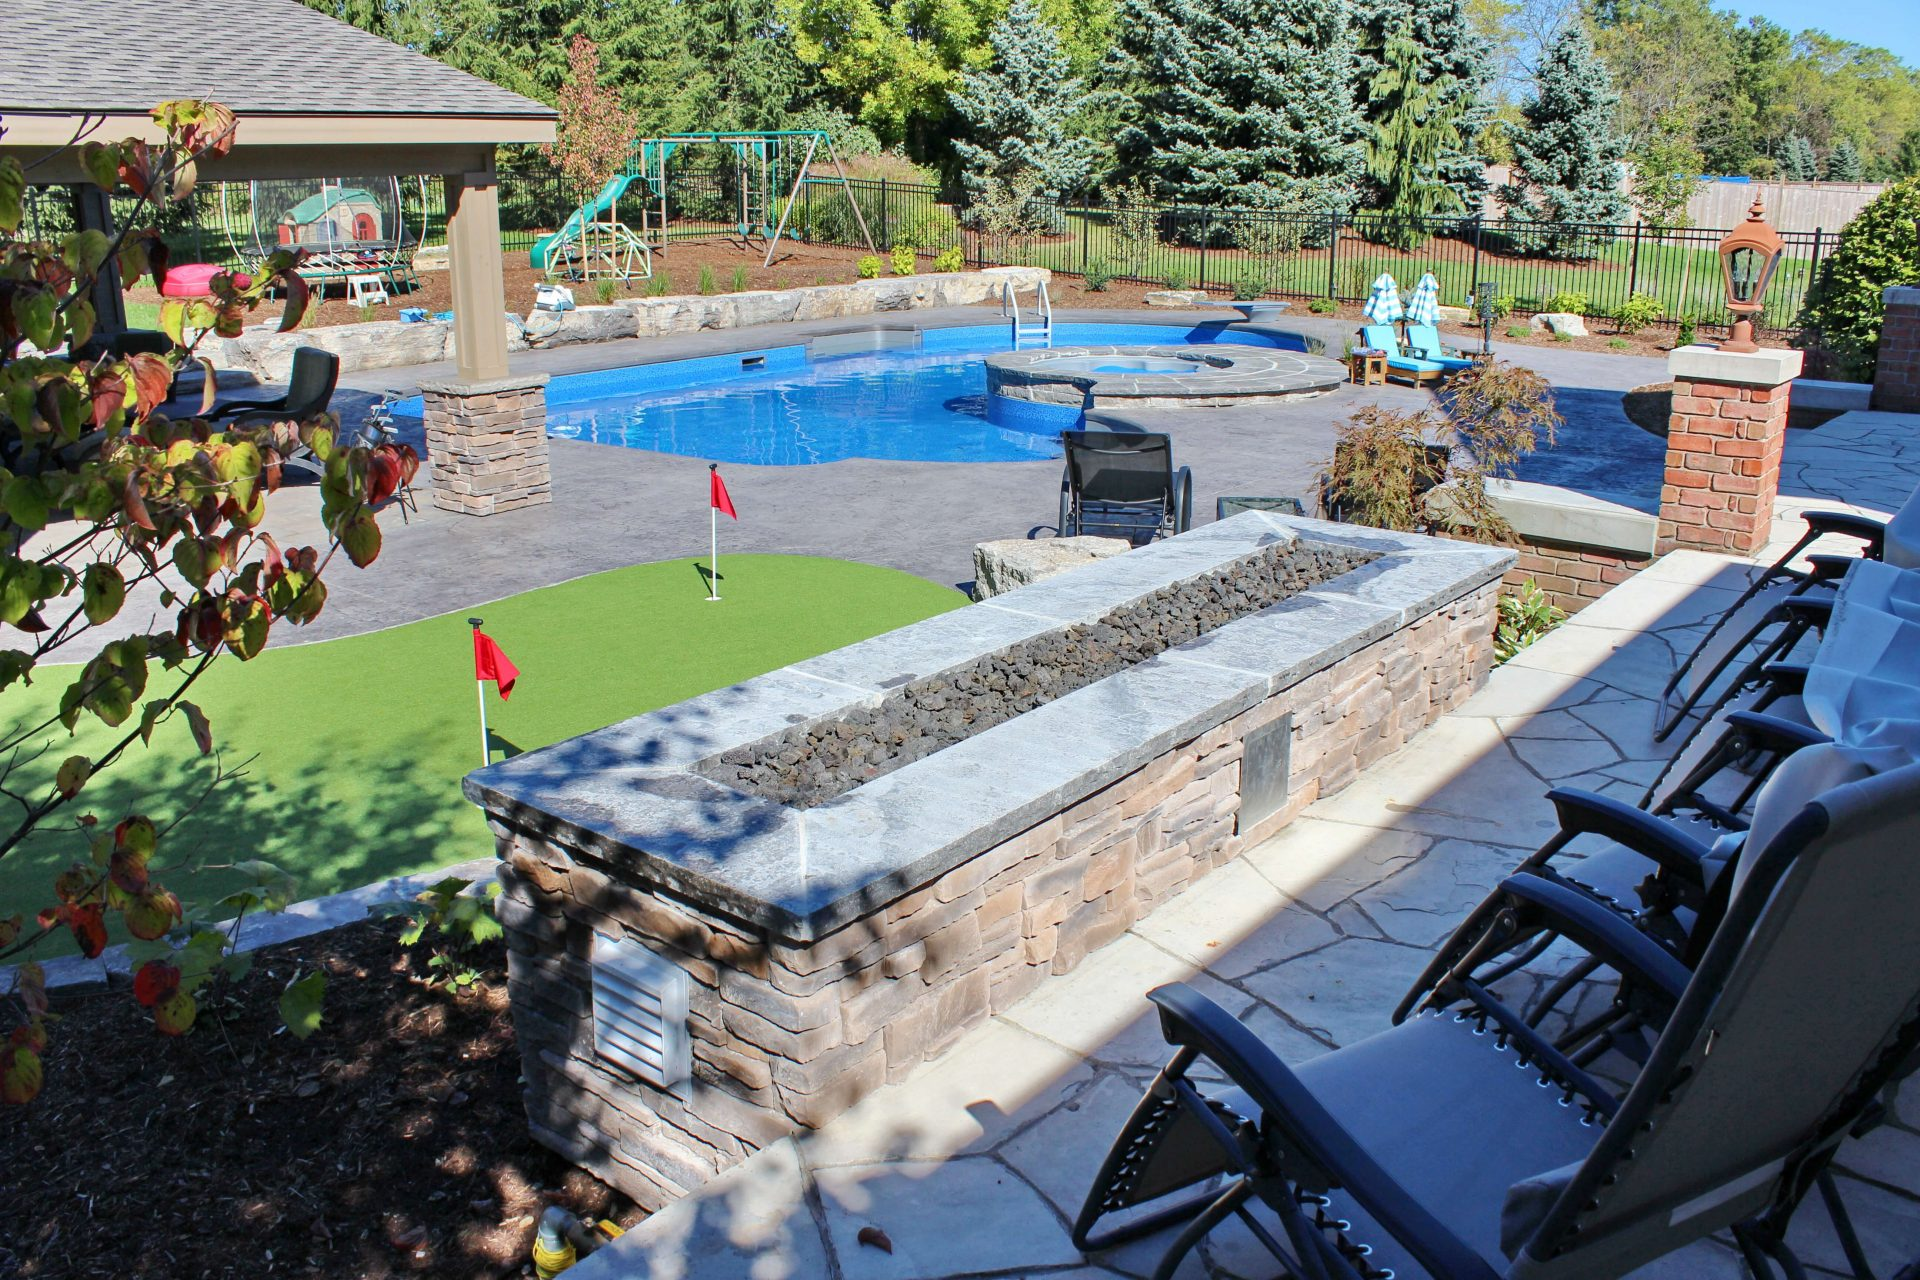 Swimming pool and miniature golf greens